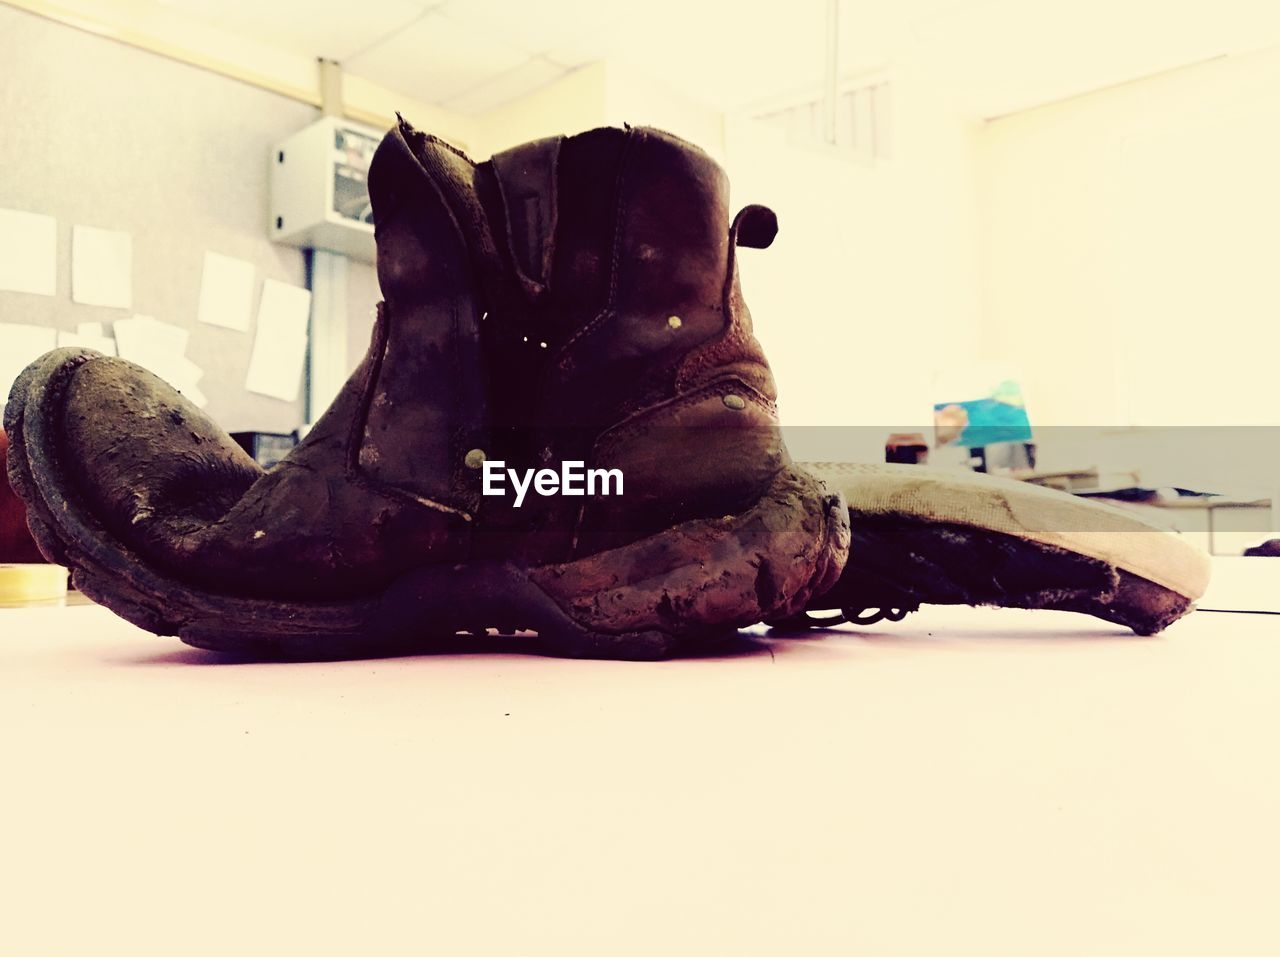 indoors, shoe, relaxation, mammal, boot, close-up, no people, domestic, resting, home interior, pets, lying down, domestic animals, representation, brown, one animal